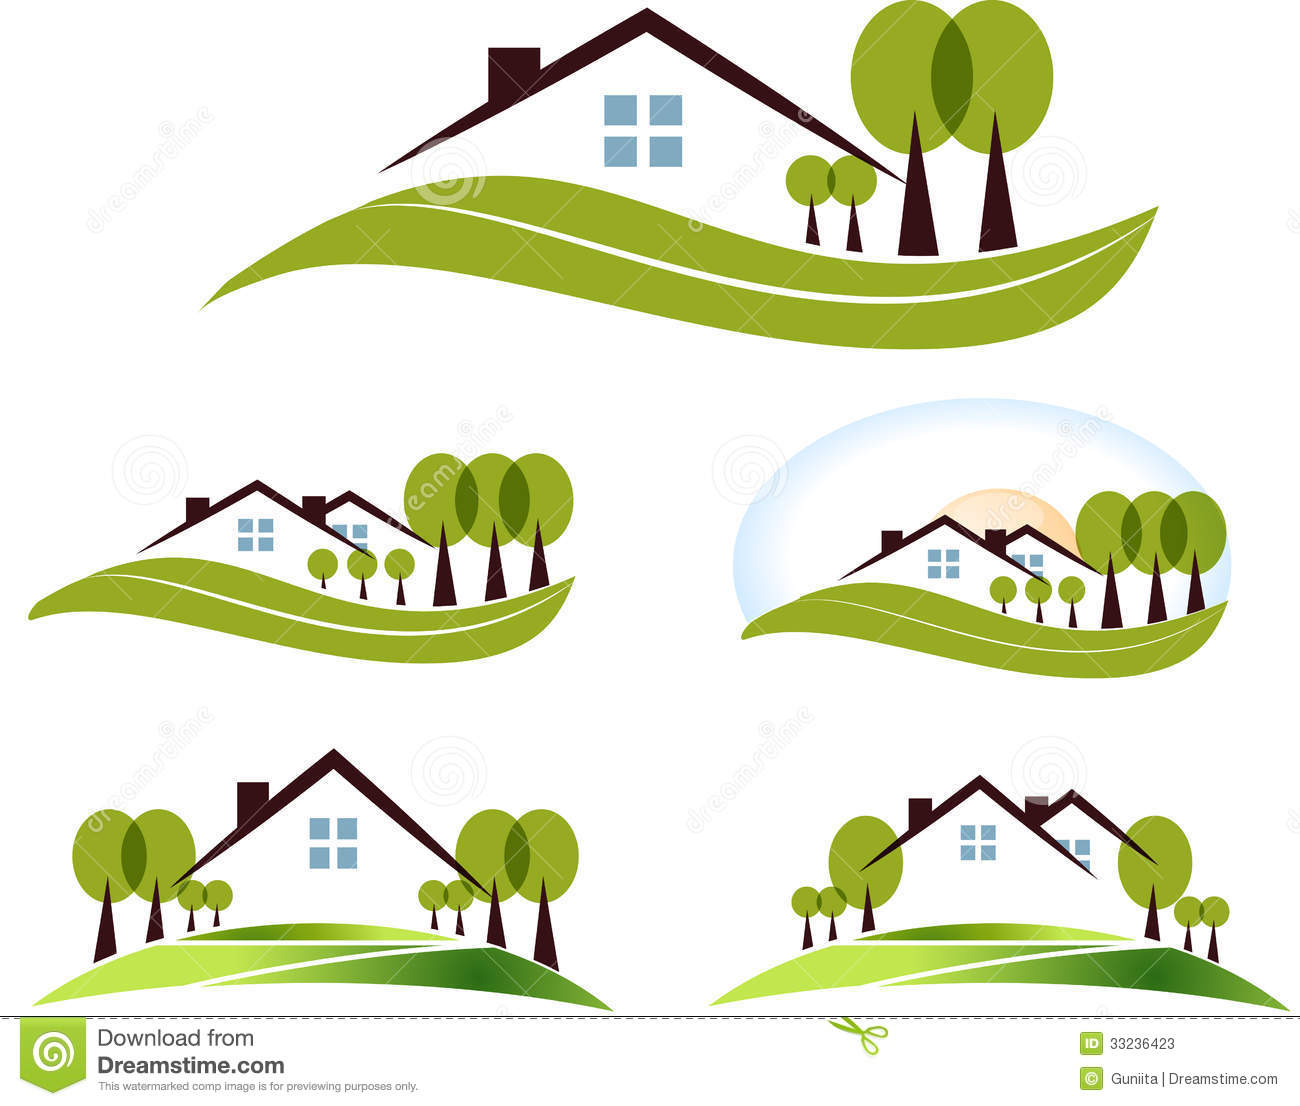 Abstract house and trees illustration set. Beautiful garden, trees and ...